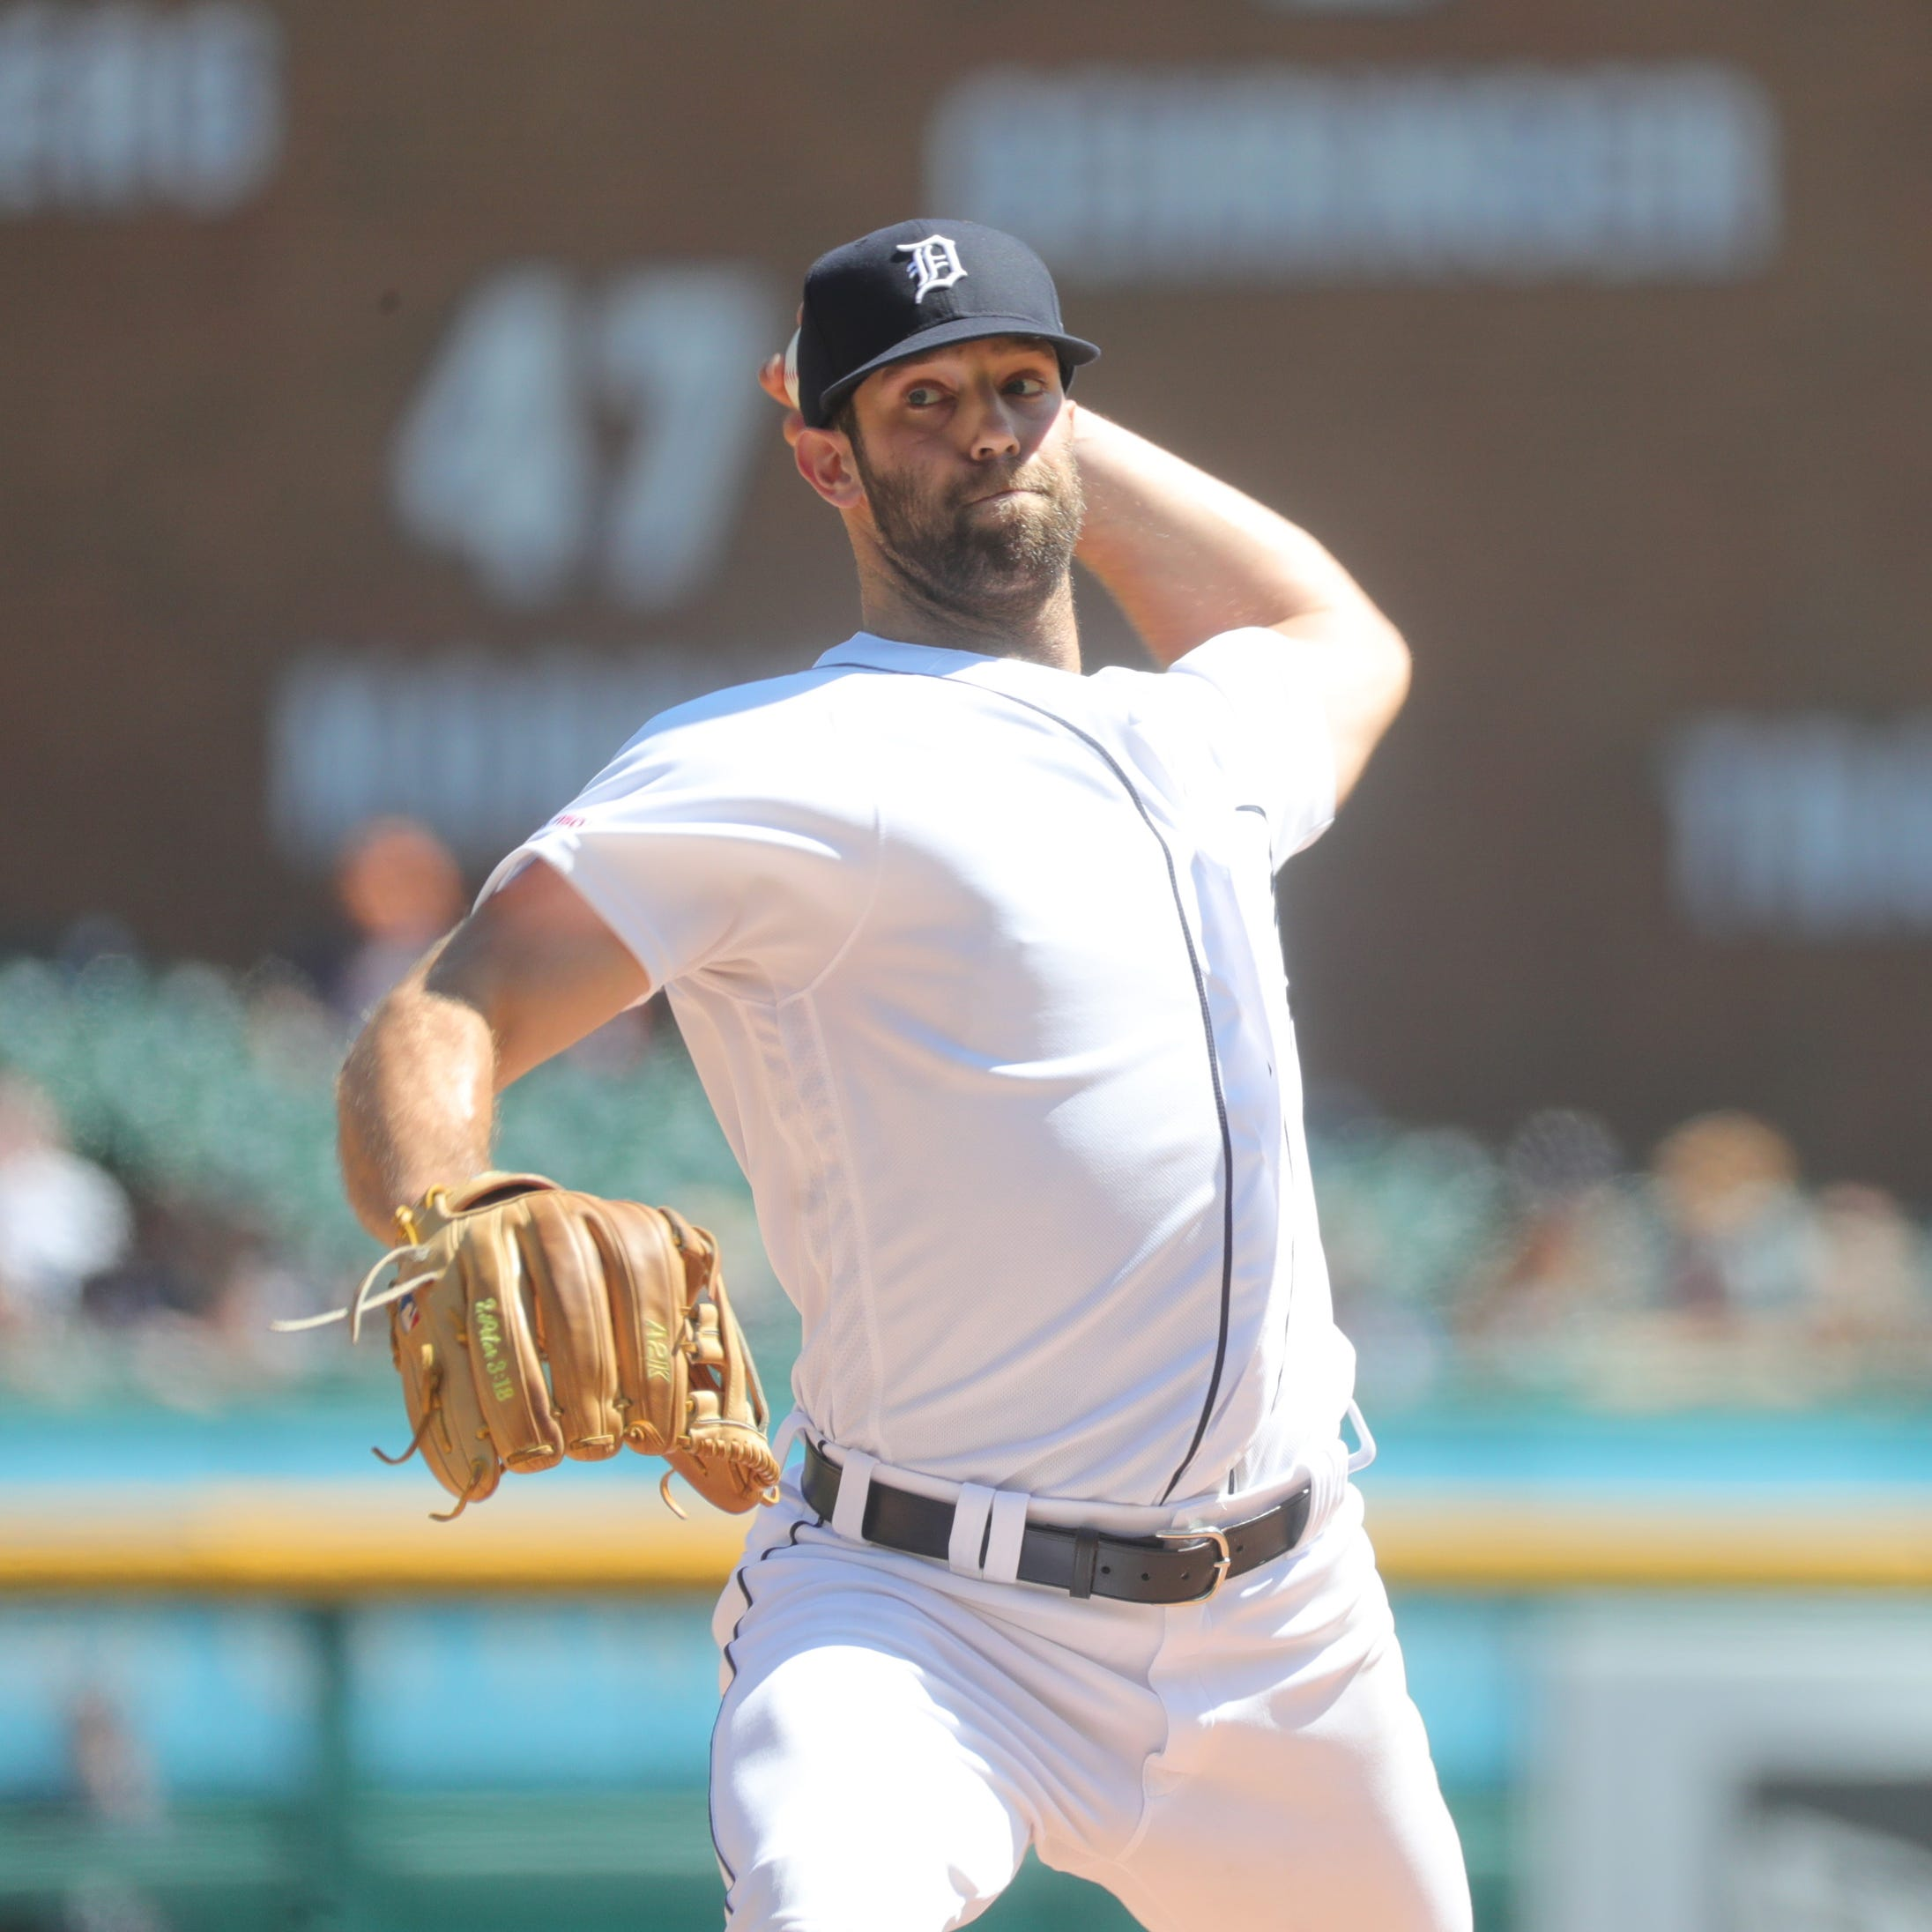 Tigers' Daniel Norris relied on this pitch to earn 1st win since 2017